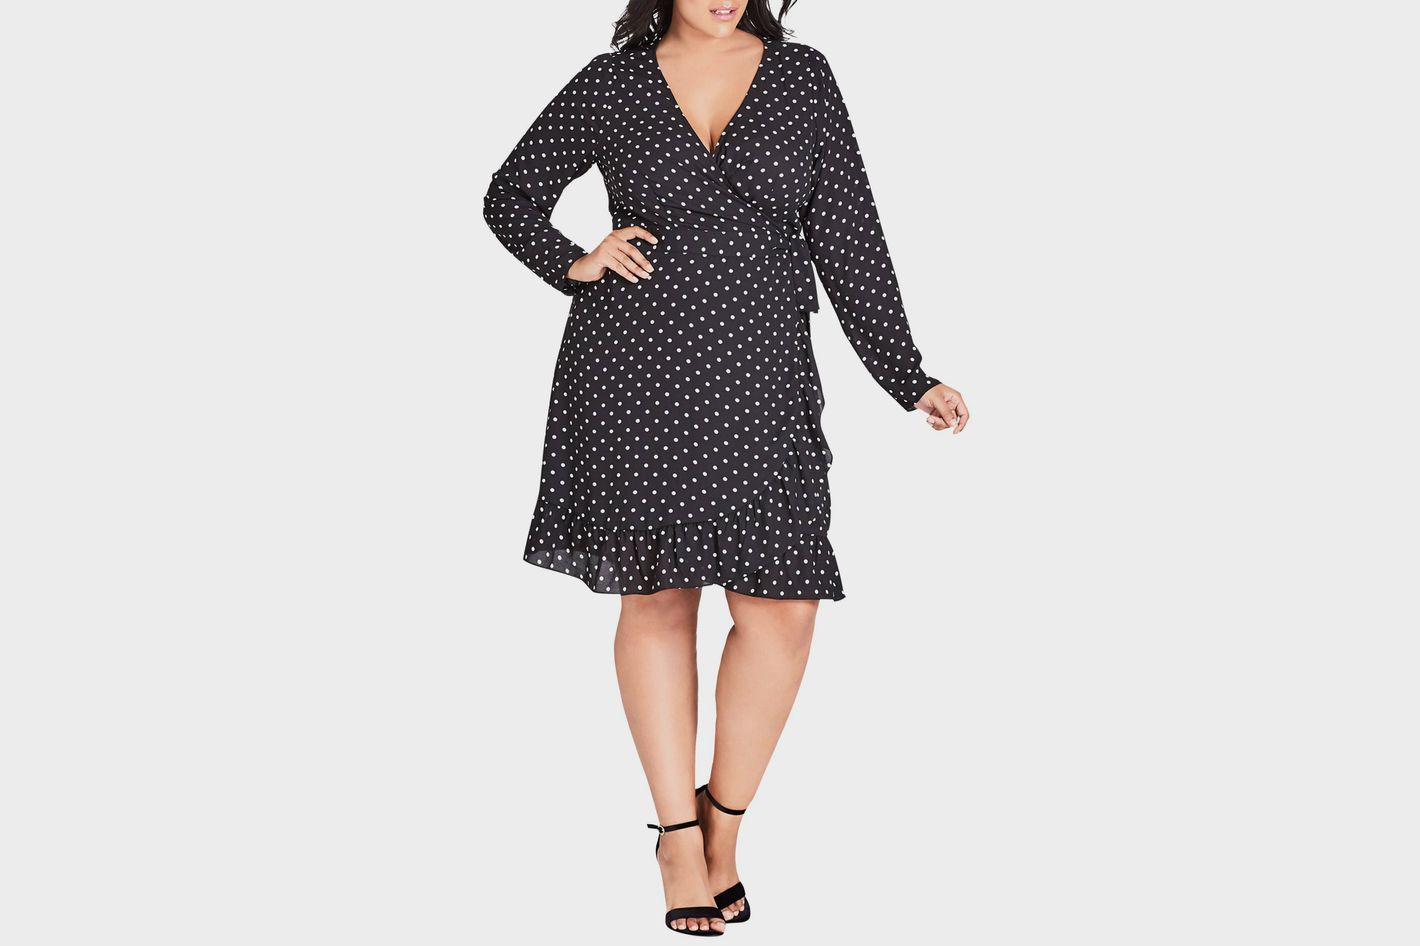 d42d6a396948b 25 Wrap Dresses You Can Wear to Work